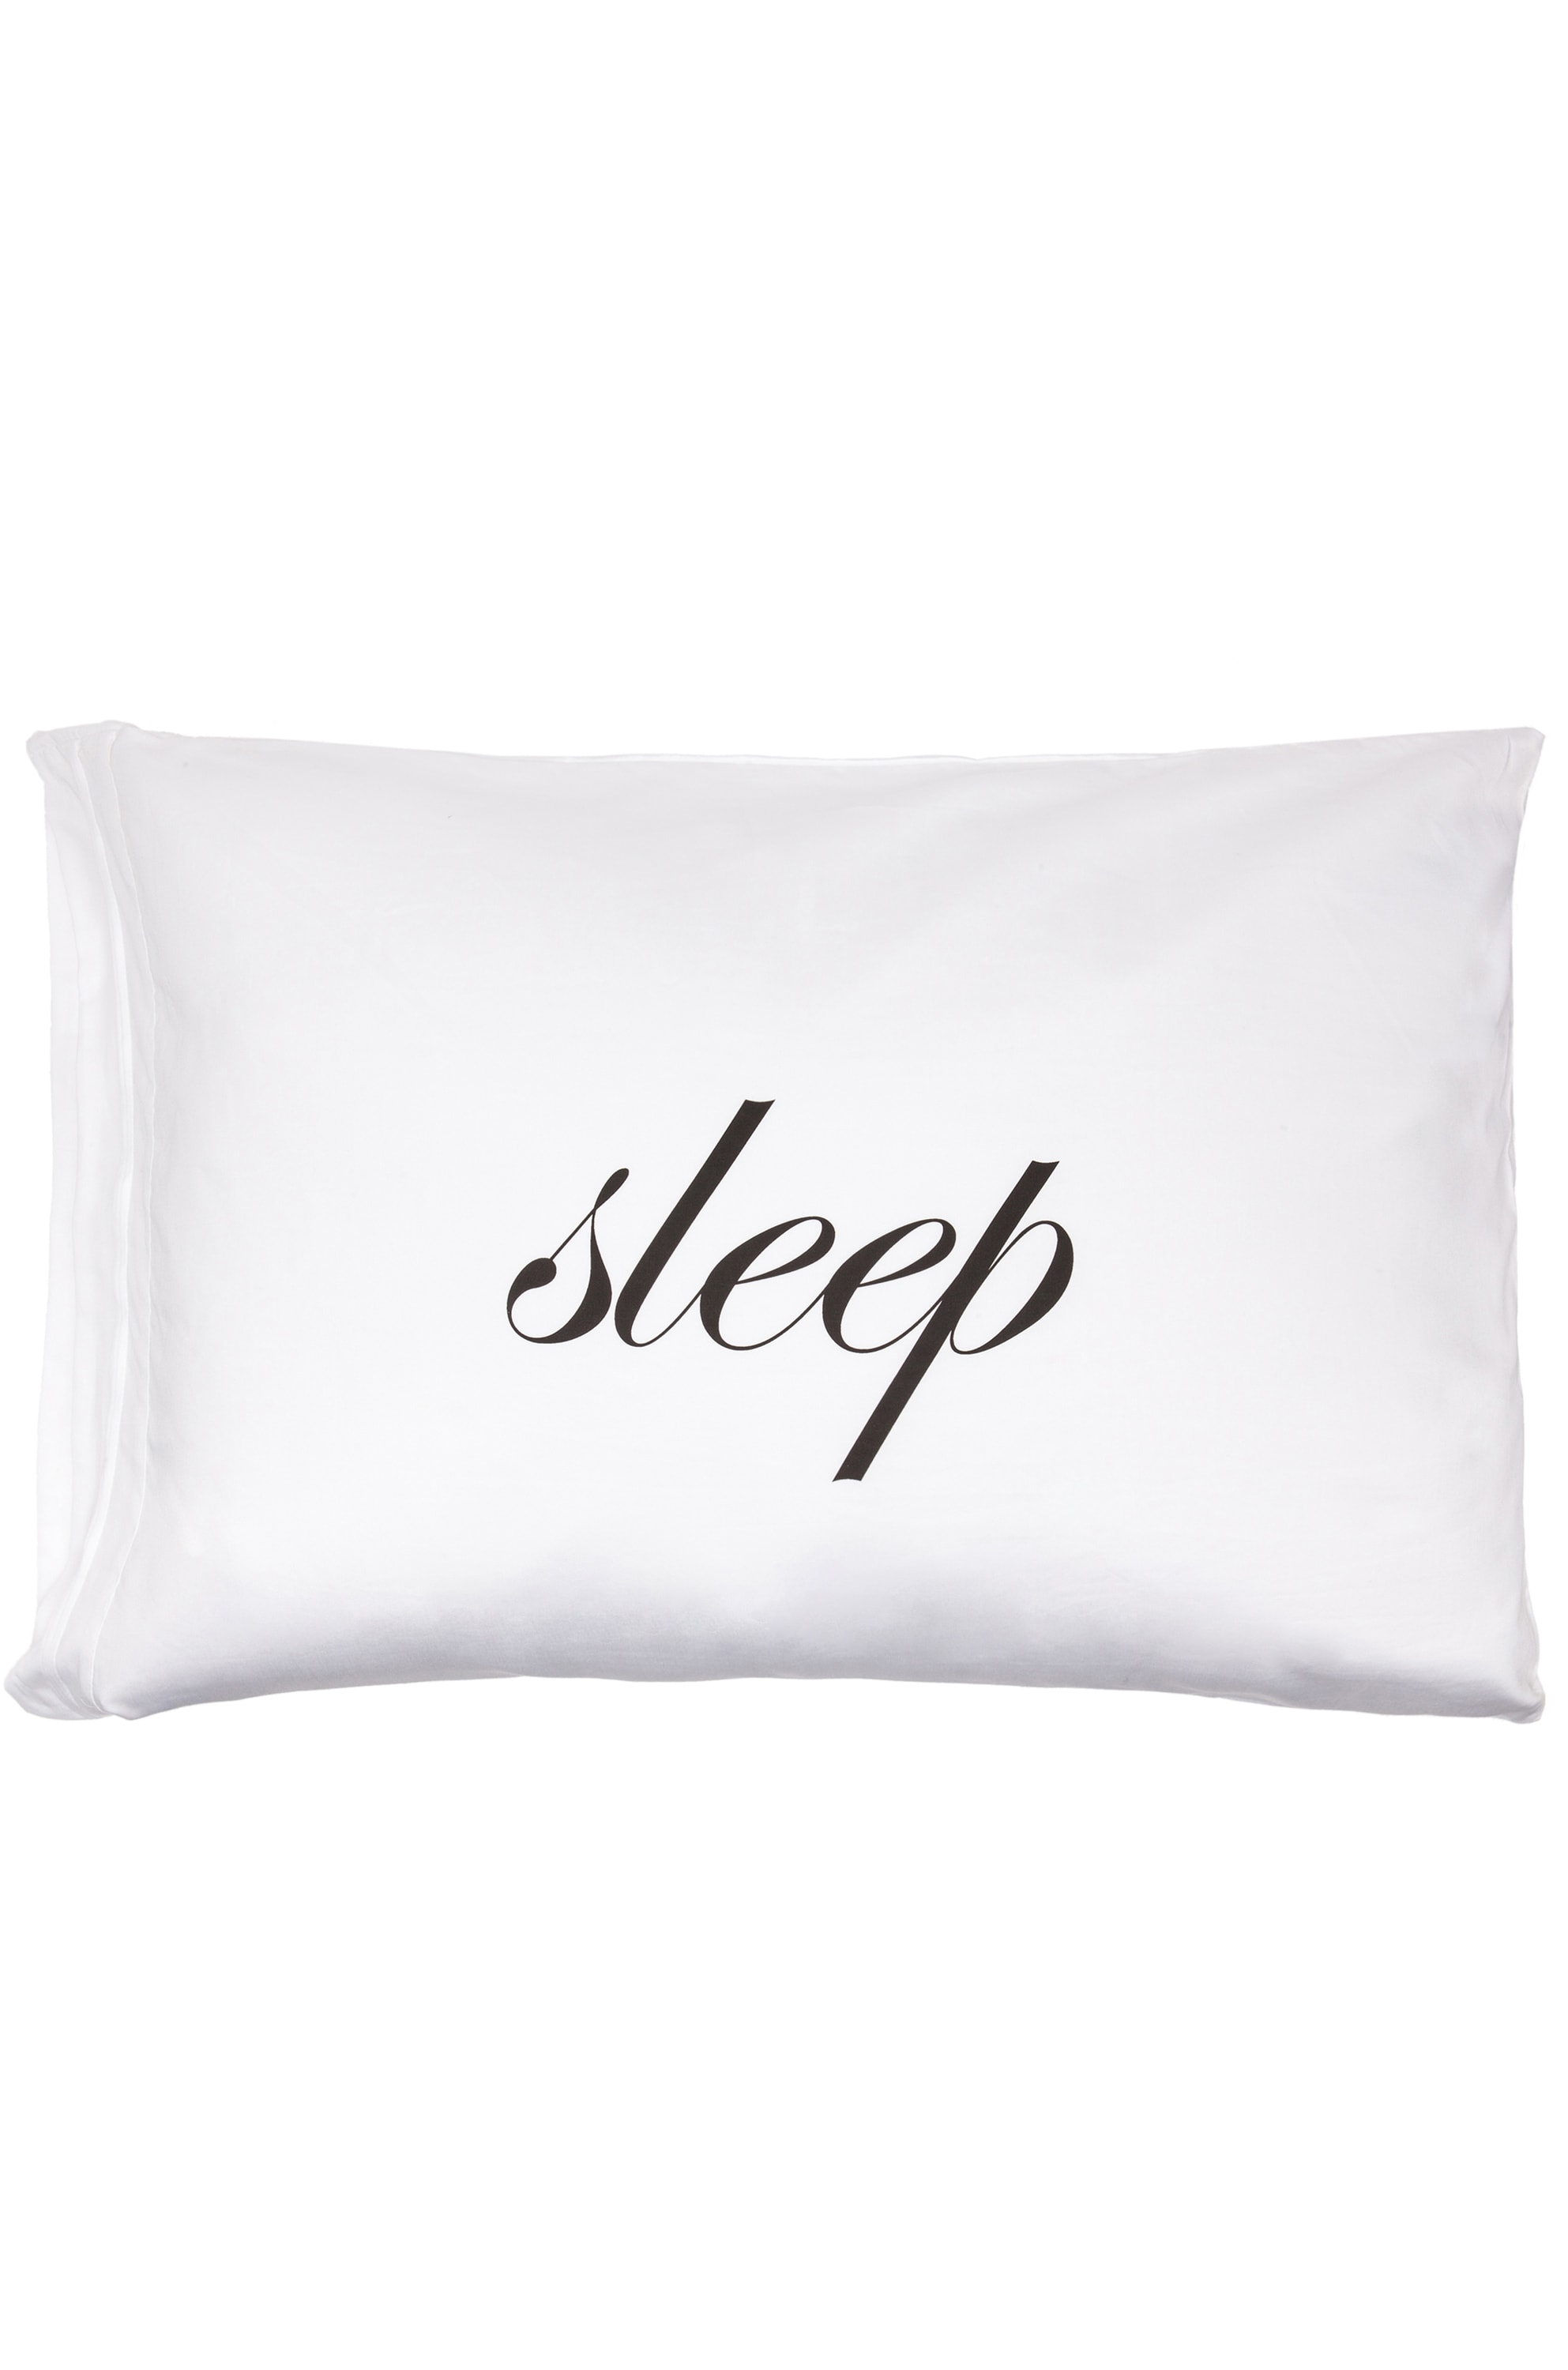 Image 1 of Kiki de Montparnasse Sleep/Fuck Standard Pillowcase Set in White